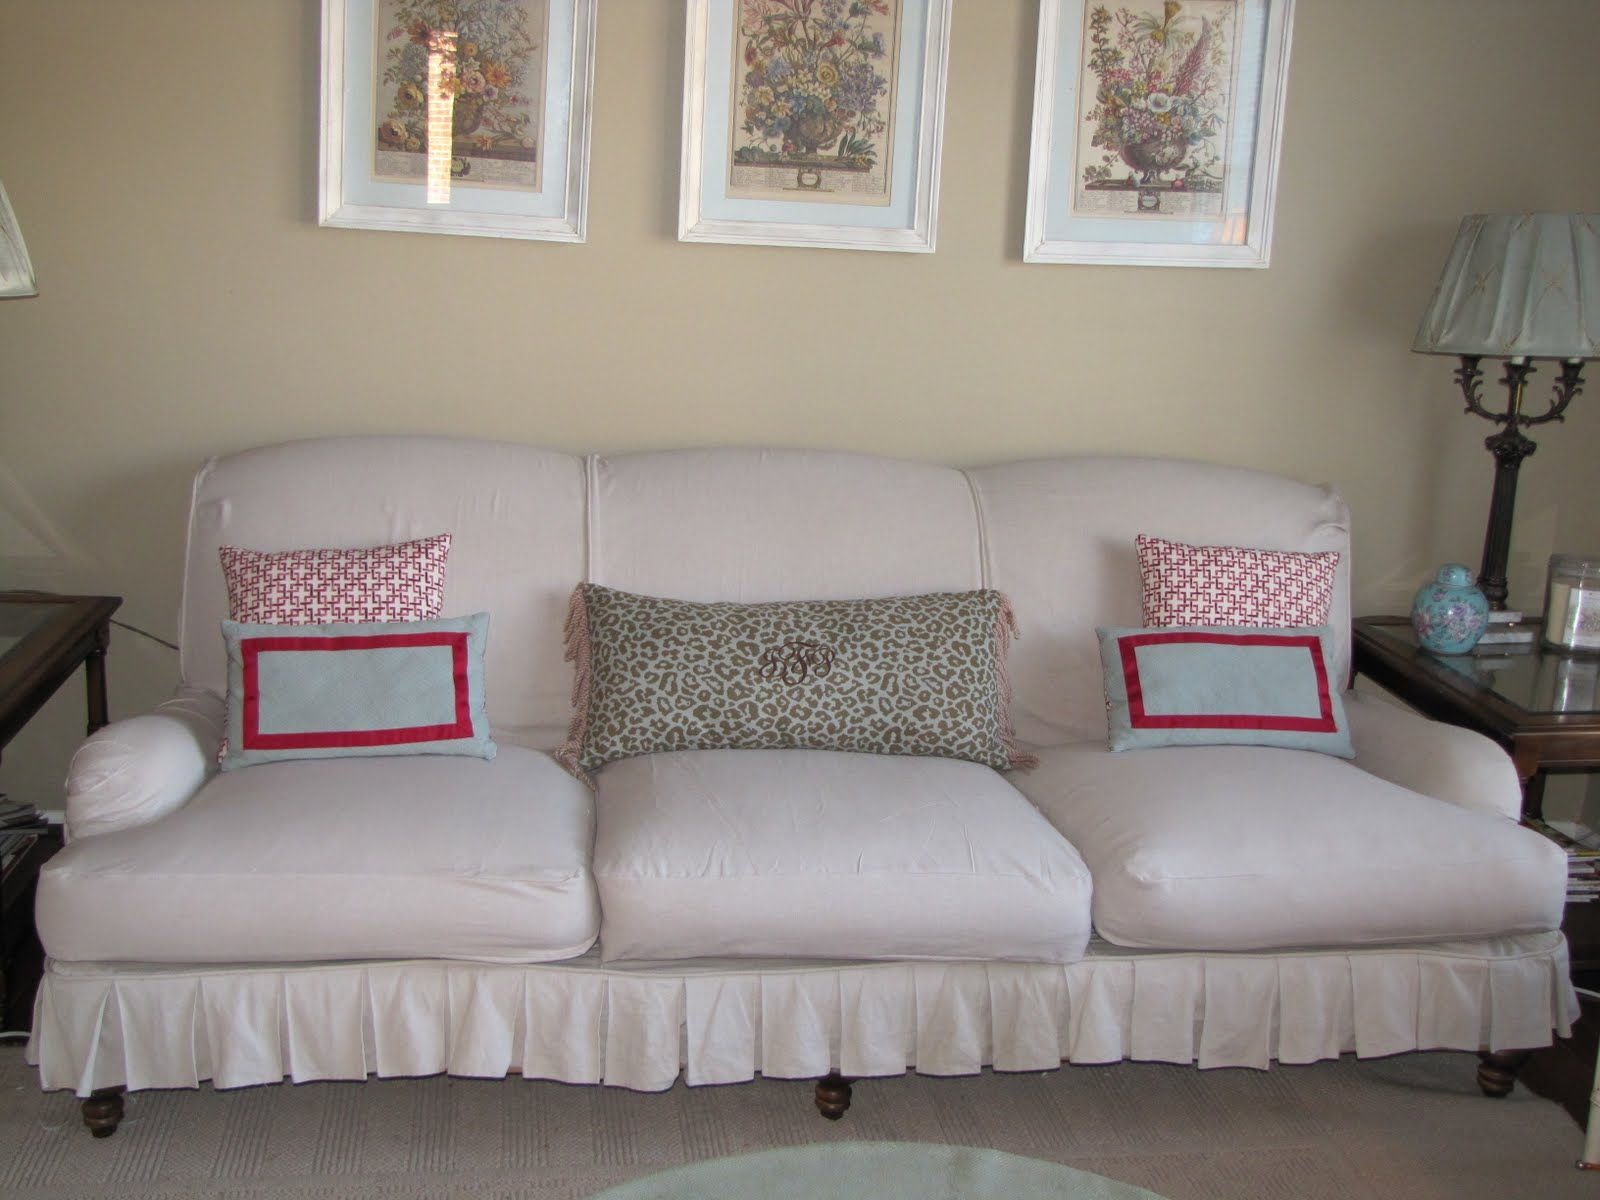 How To Slipcover Sofas And Chairs (make Cushion Covers)